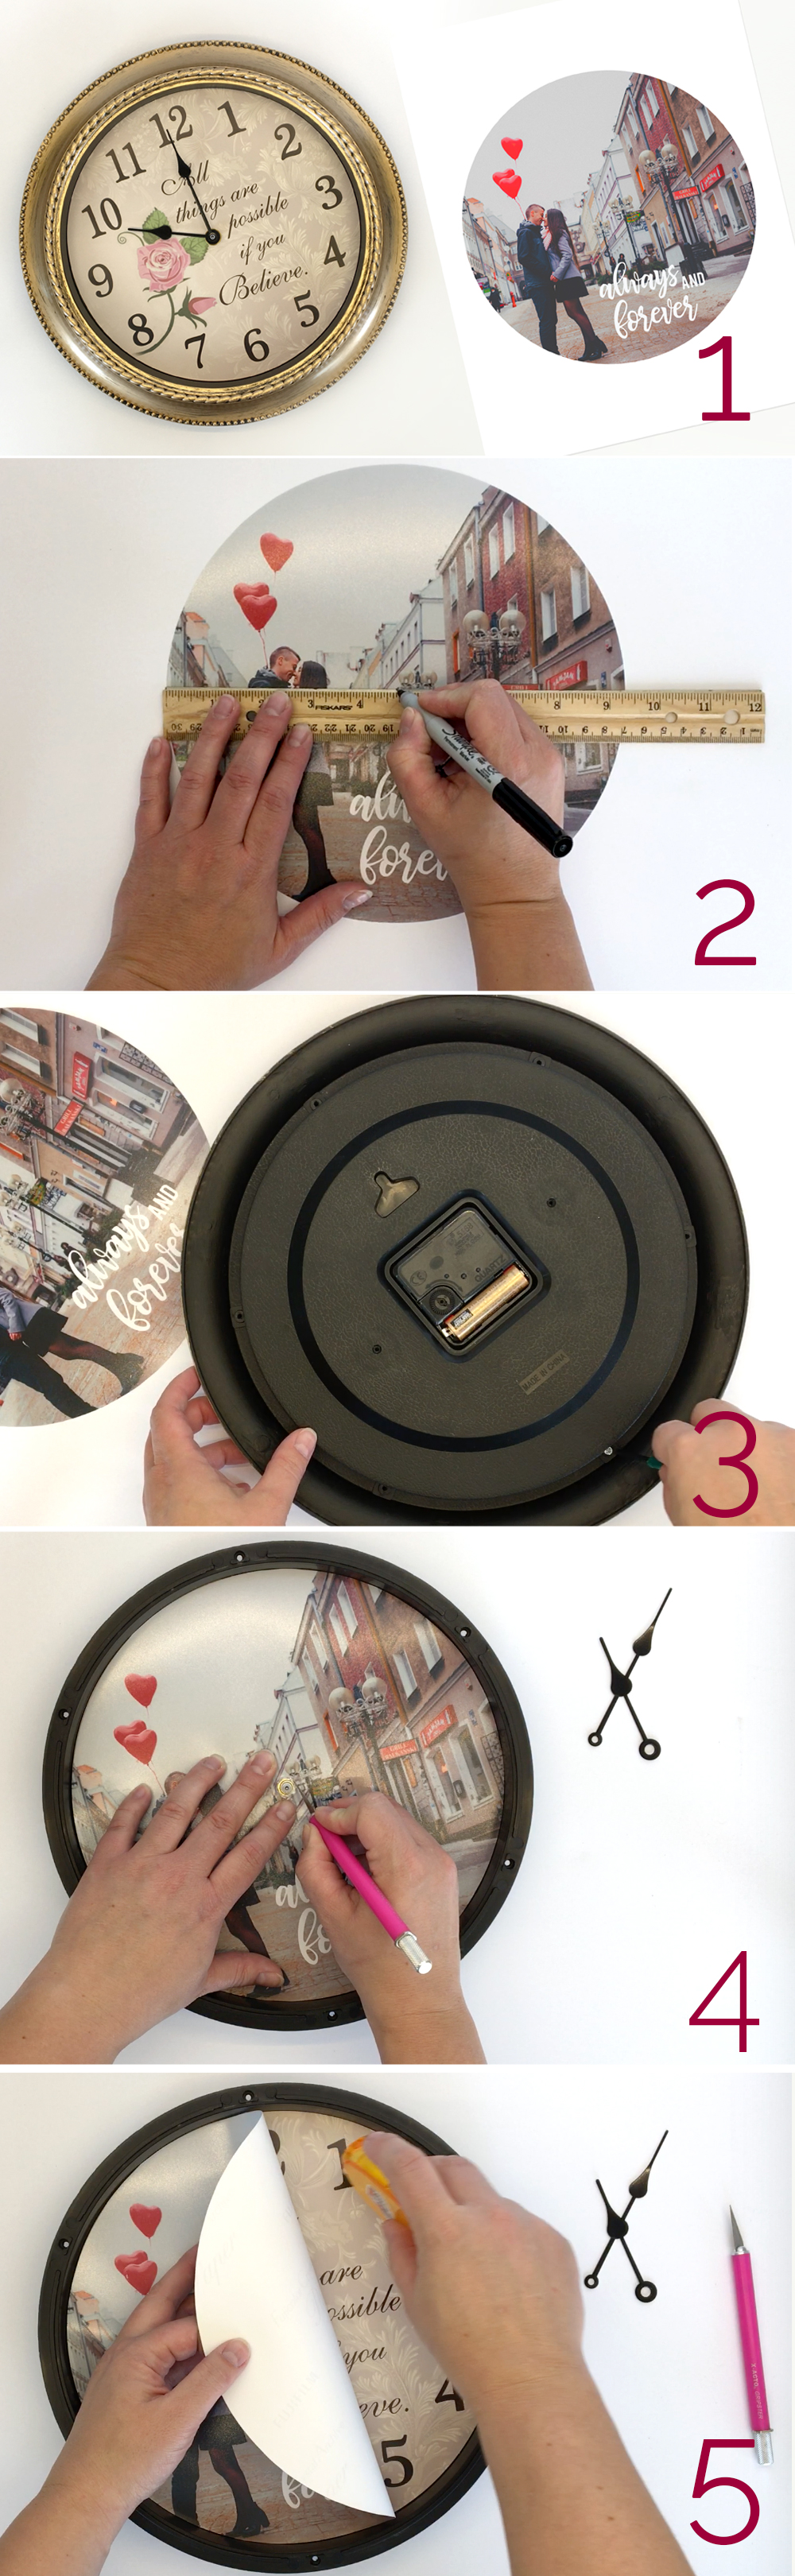 How to make a personalized photo clock. Great DIY gift idea for Mother's Day, Father's Day, weddings, anniversary, and more! Easy photo gift idea.